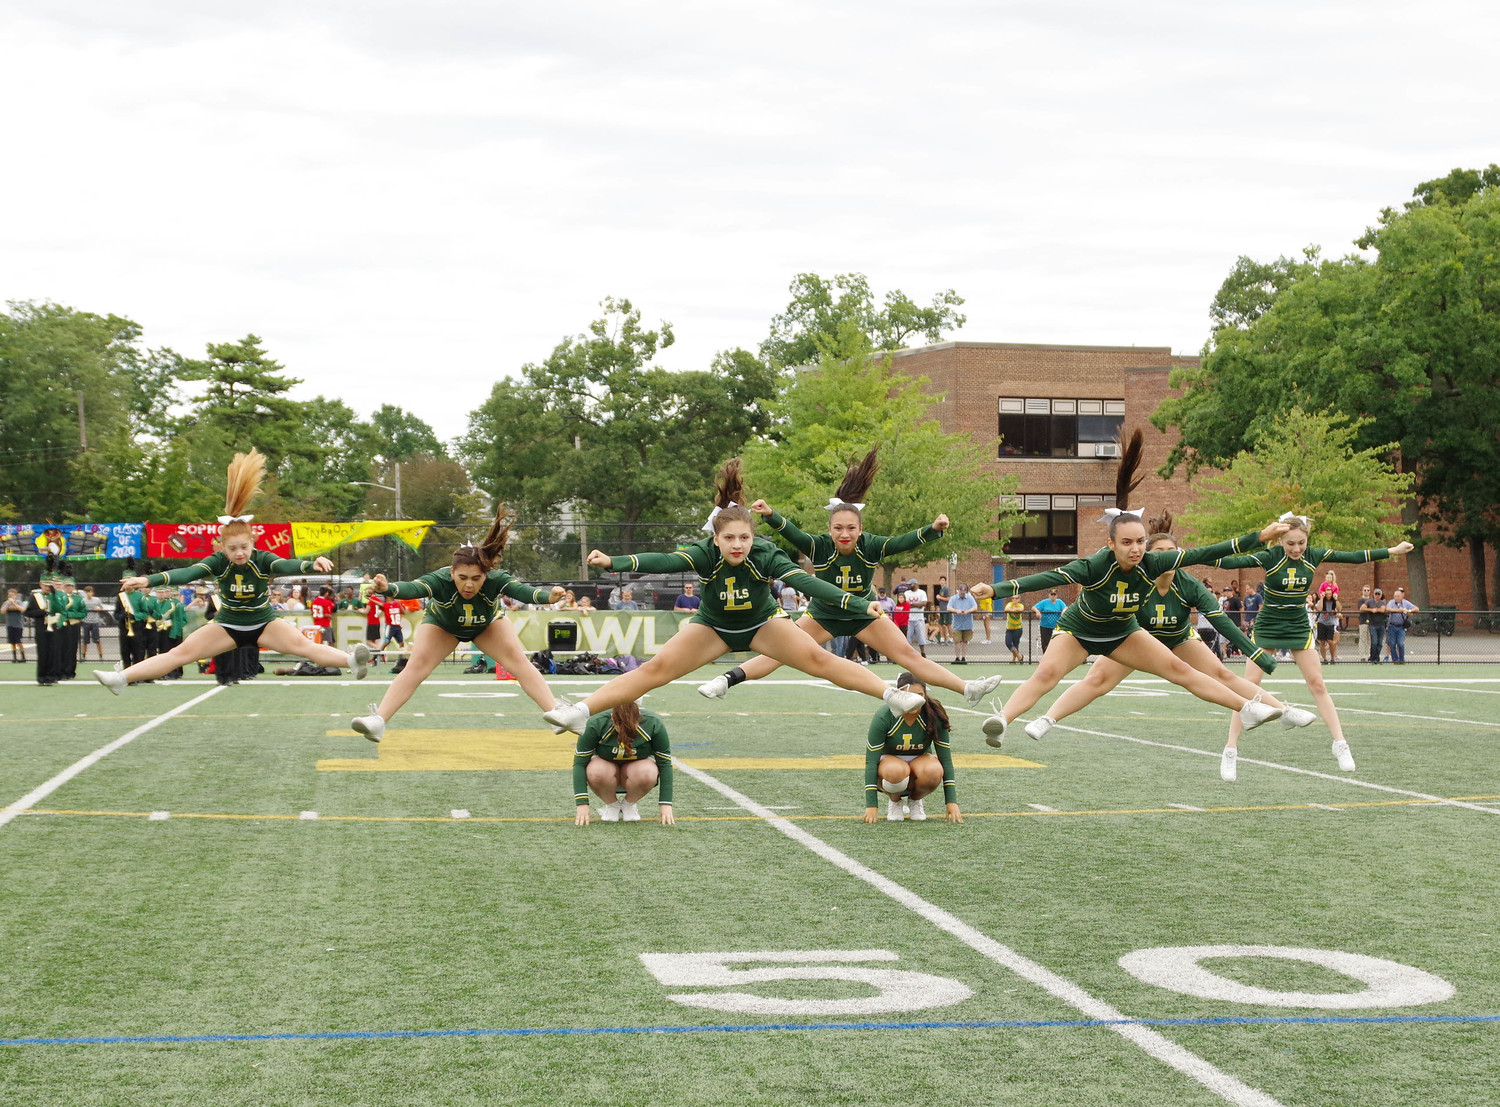 Lynbrook's cheerleading squad was decked in green and gold and dazzled the audience during halftime.